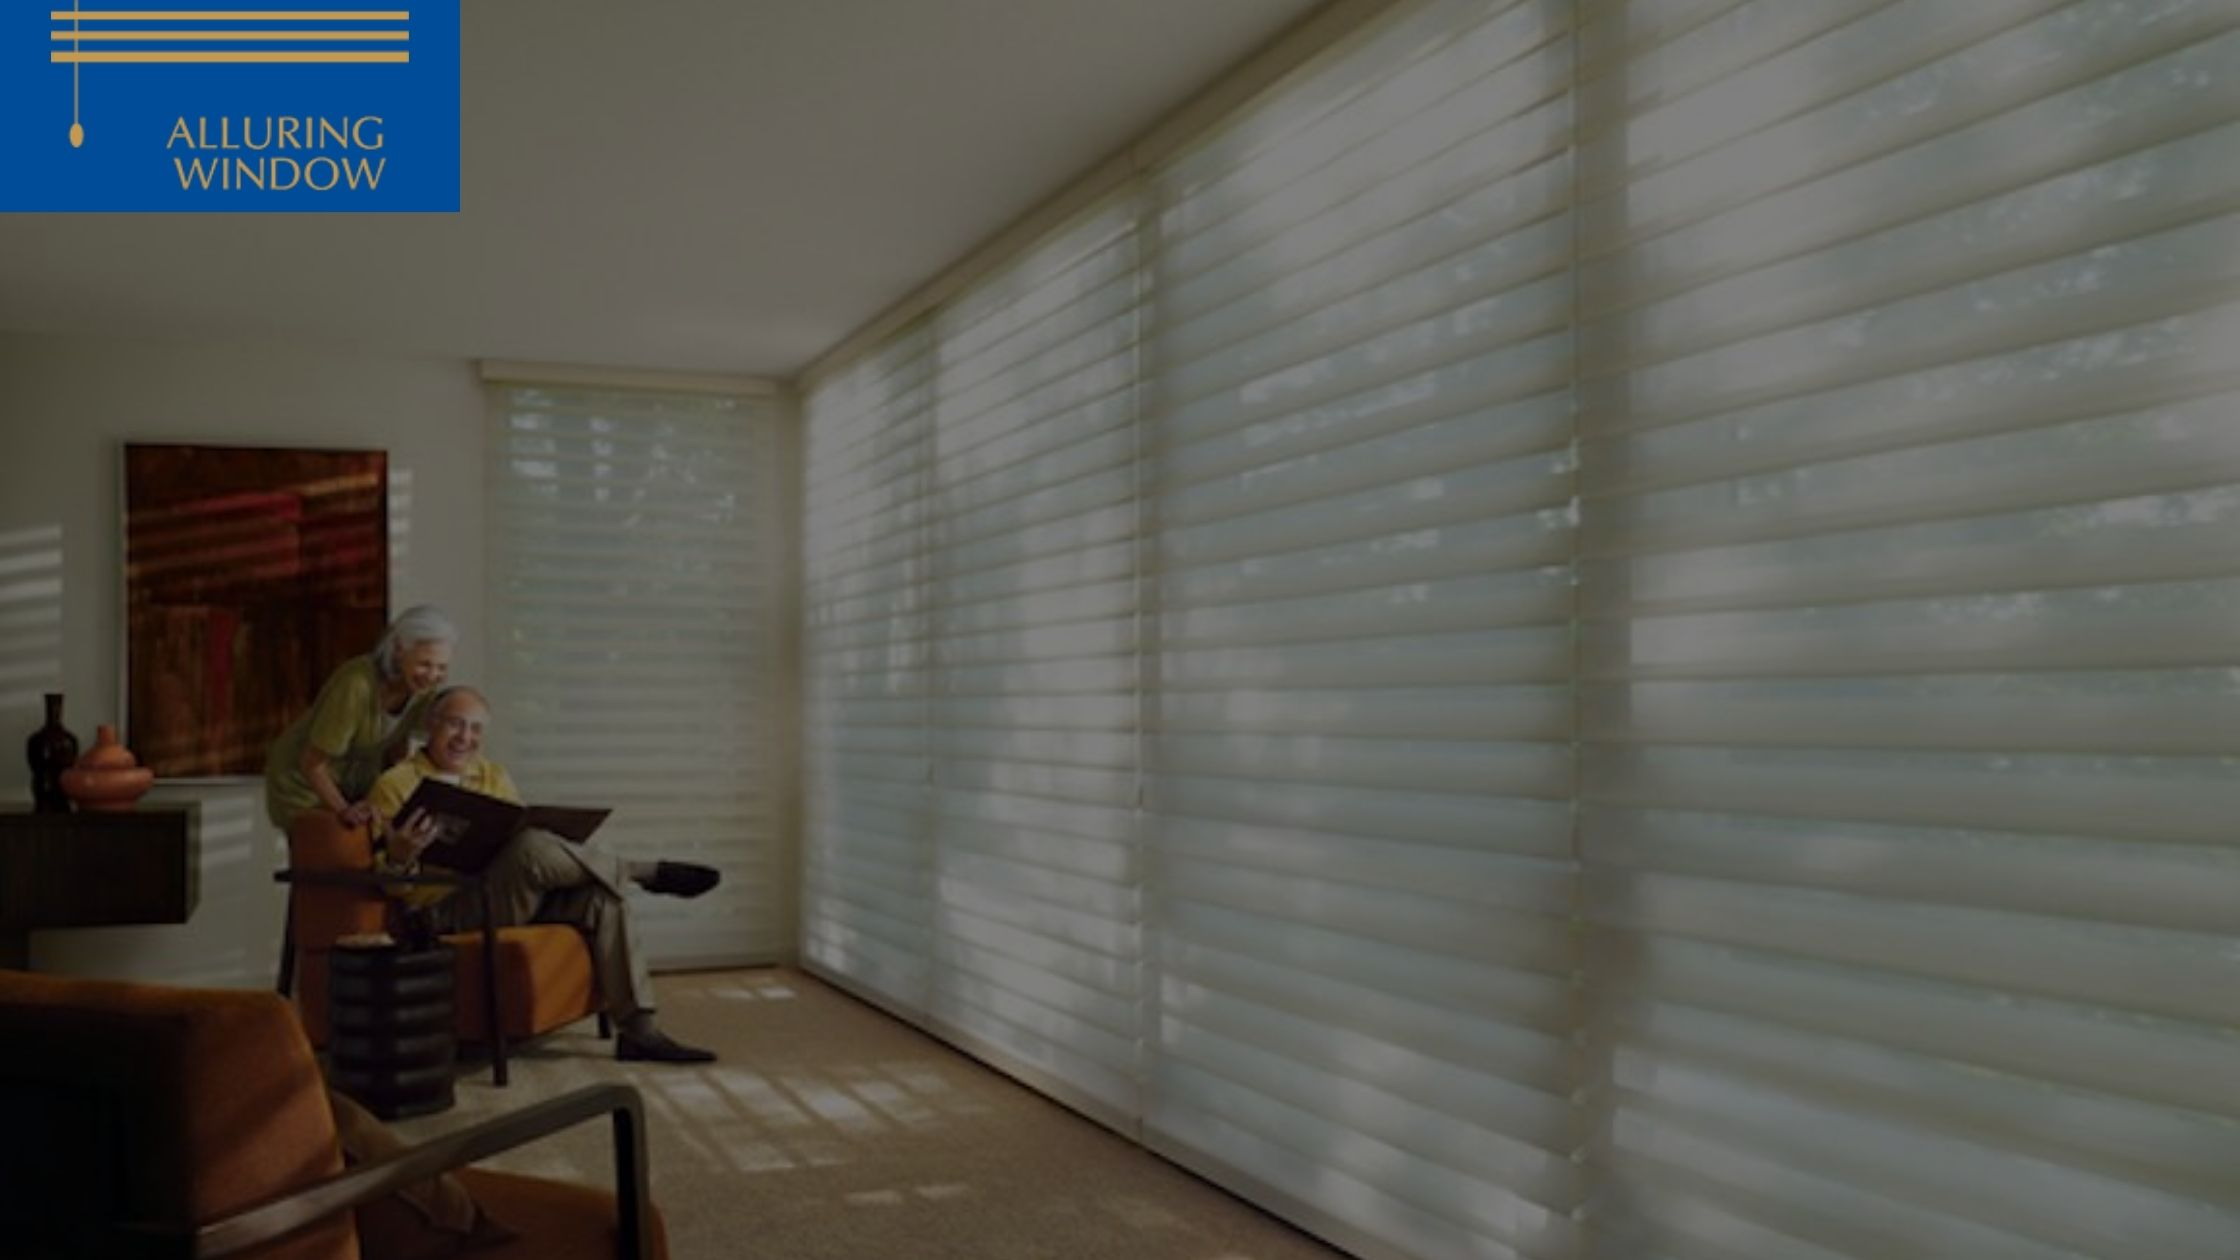 How To Save Money with Energy Efficient Blinds